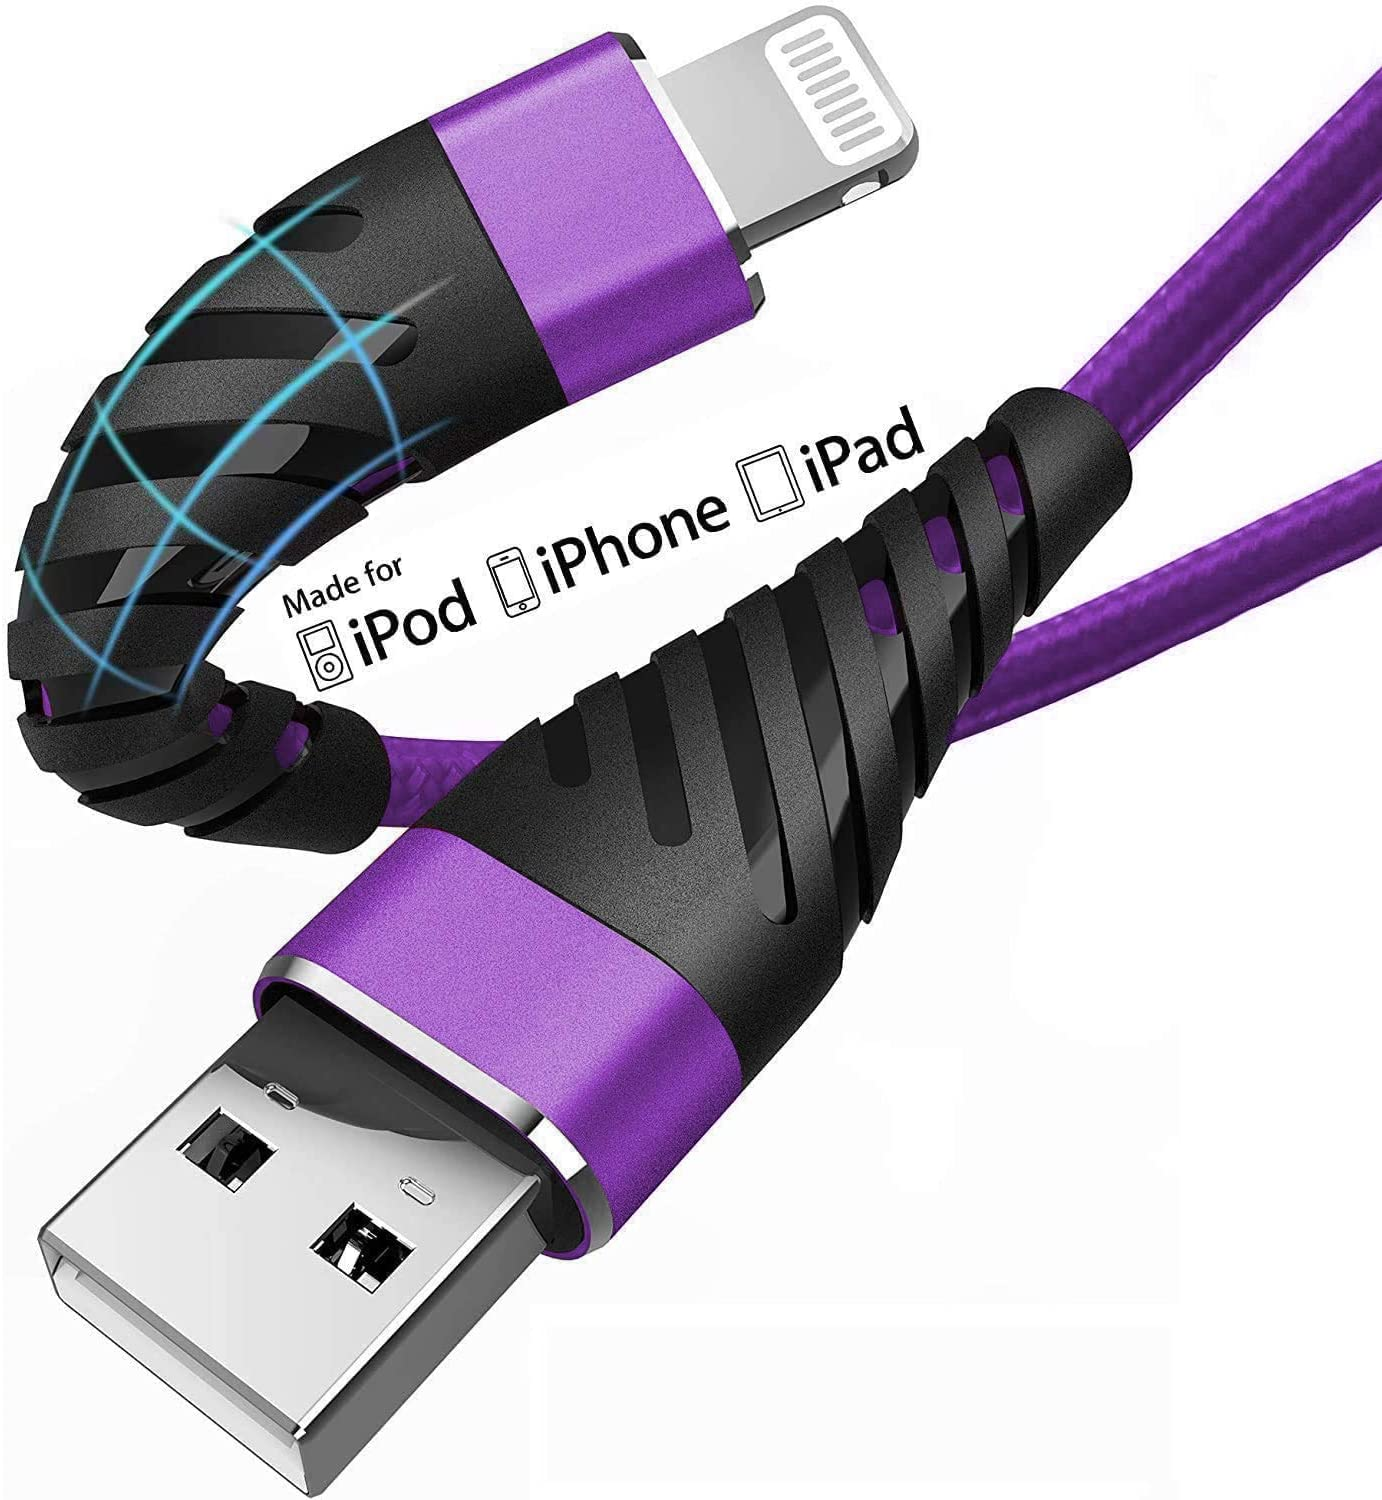 iPhone Charger Cable 6ft for [Apple MFi Certified],(2 Pack) CyvenSmart 6 Foot Lightning Cable Fast Charging Cord 6 Feet for iPhone 11/11 Pro/11 Pro Max/XS/XS Max/XR/X/8/8 Plus/7/7 Plus-Purple